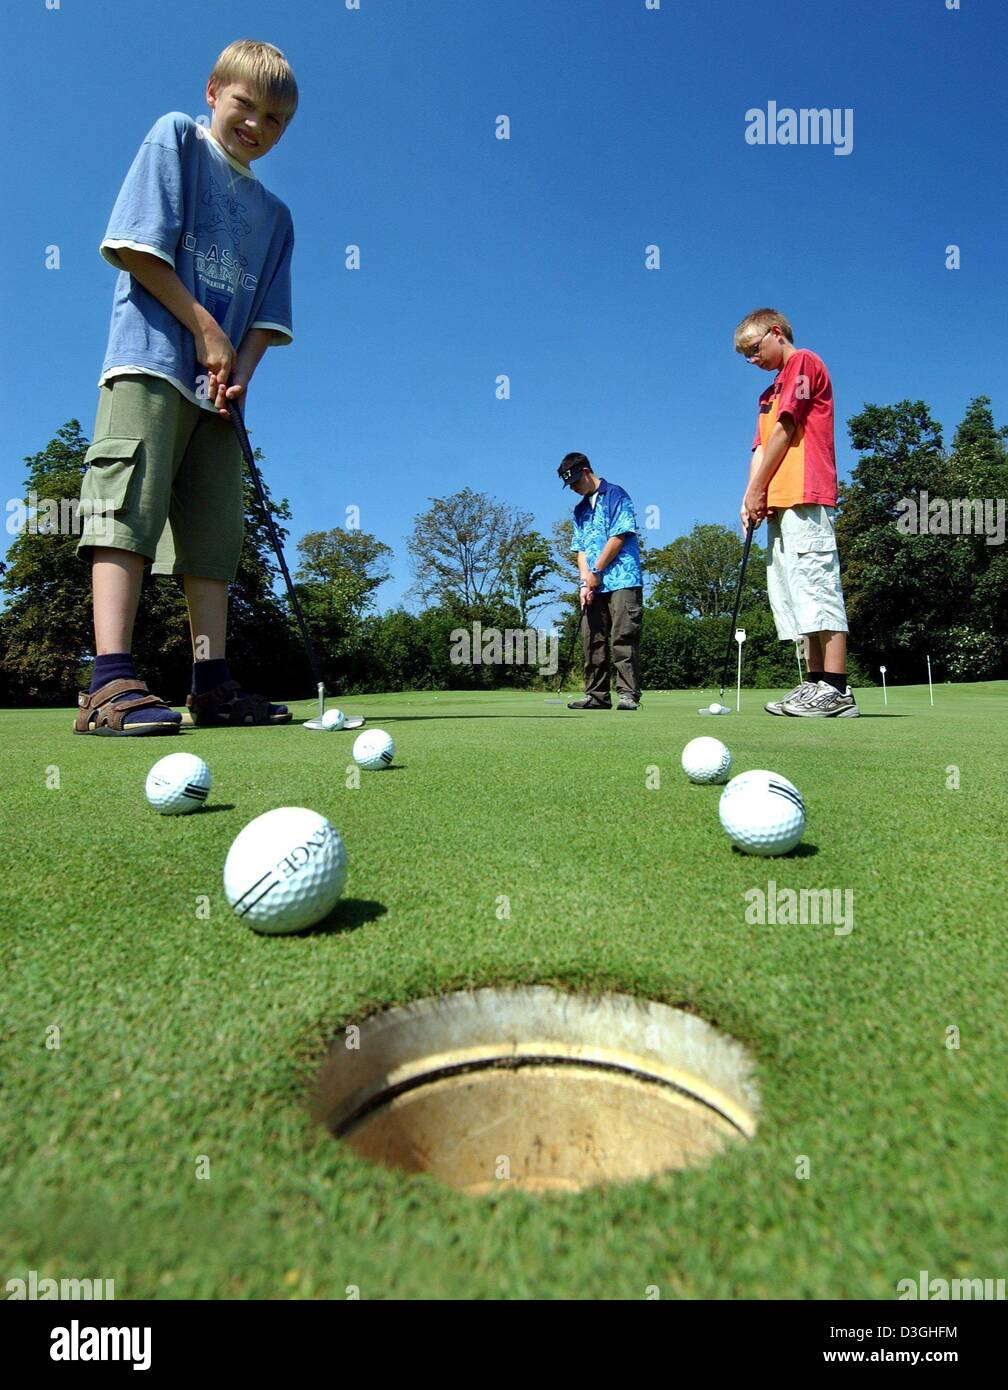 (dpa) - On the golf court of a hotel in Brandenburg, Germany, students learn how to play golf, 10 August 2004. The - Stock Image